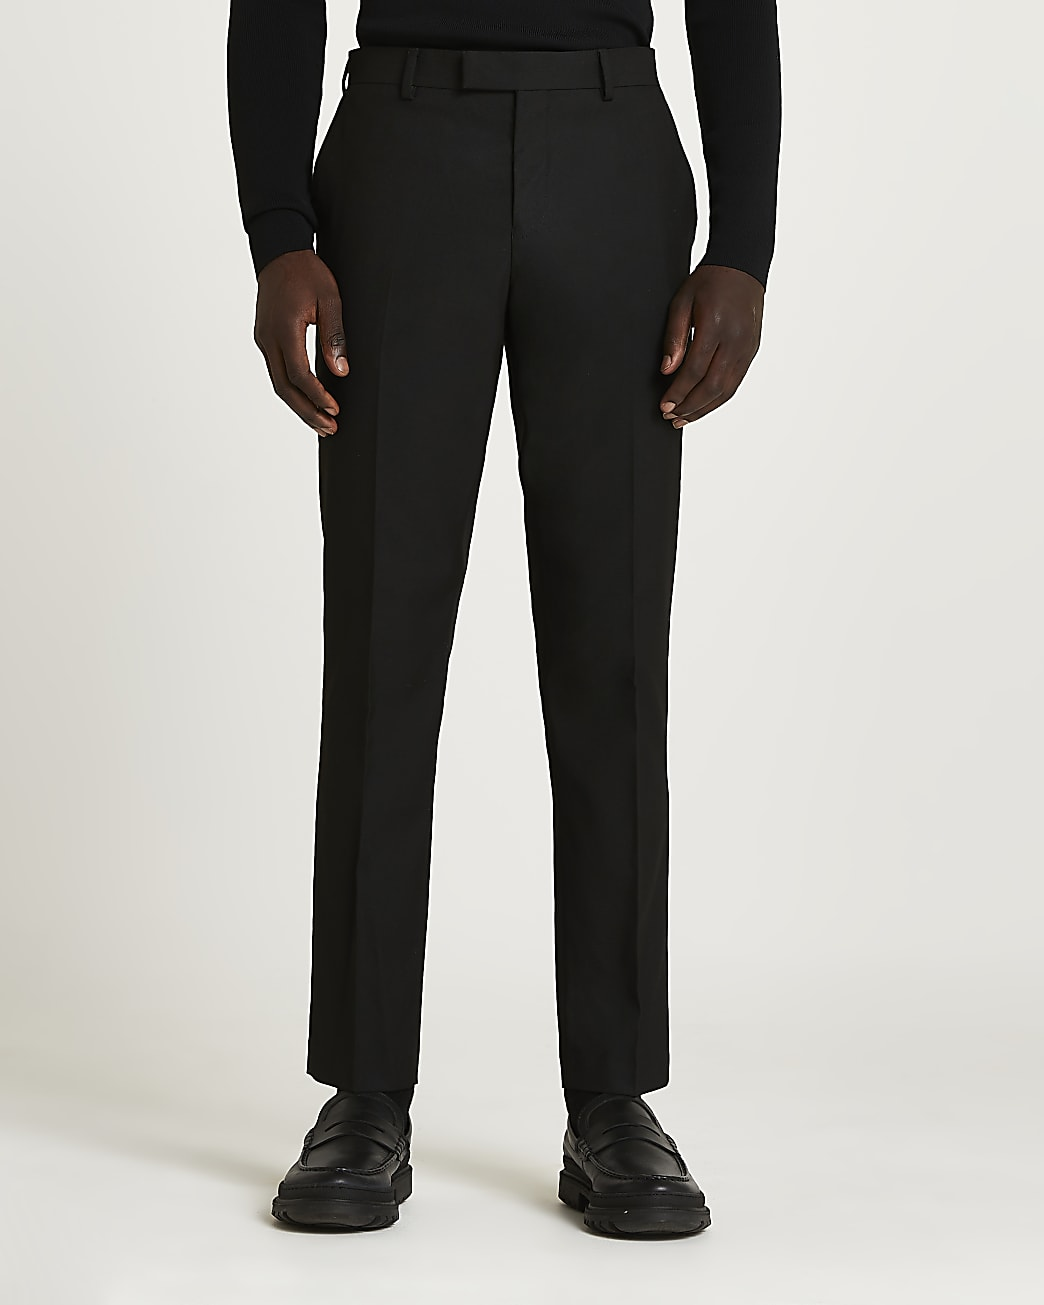 Black skinny fit twill suit trousers